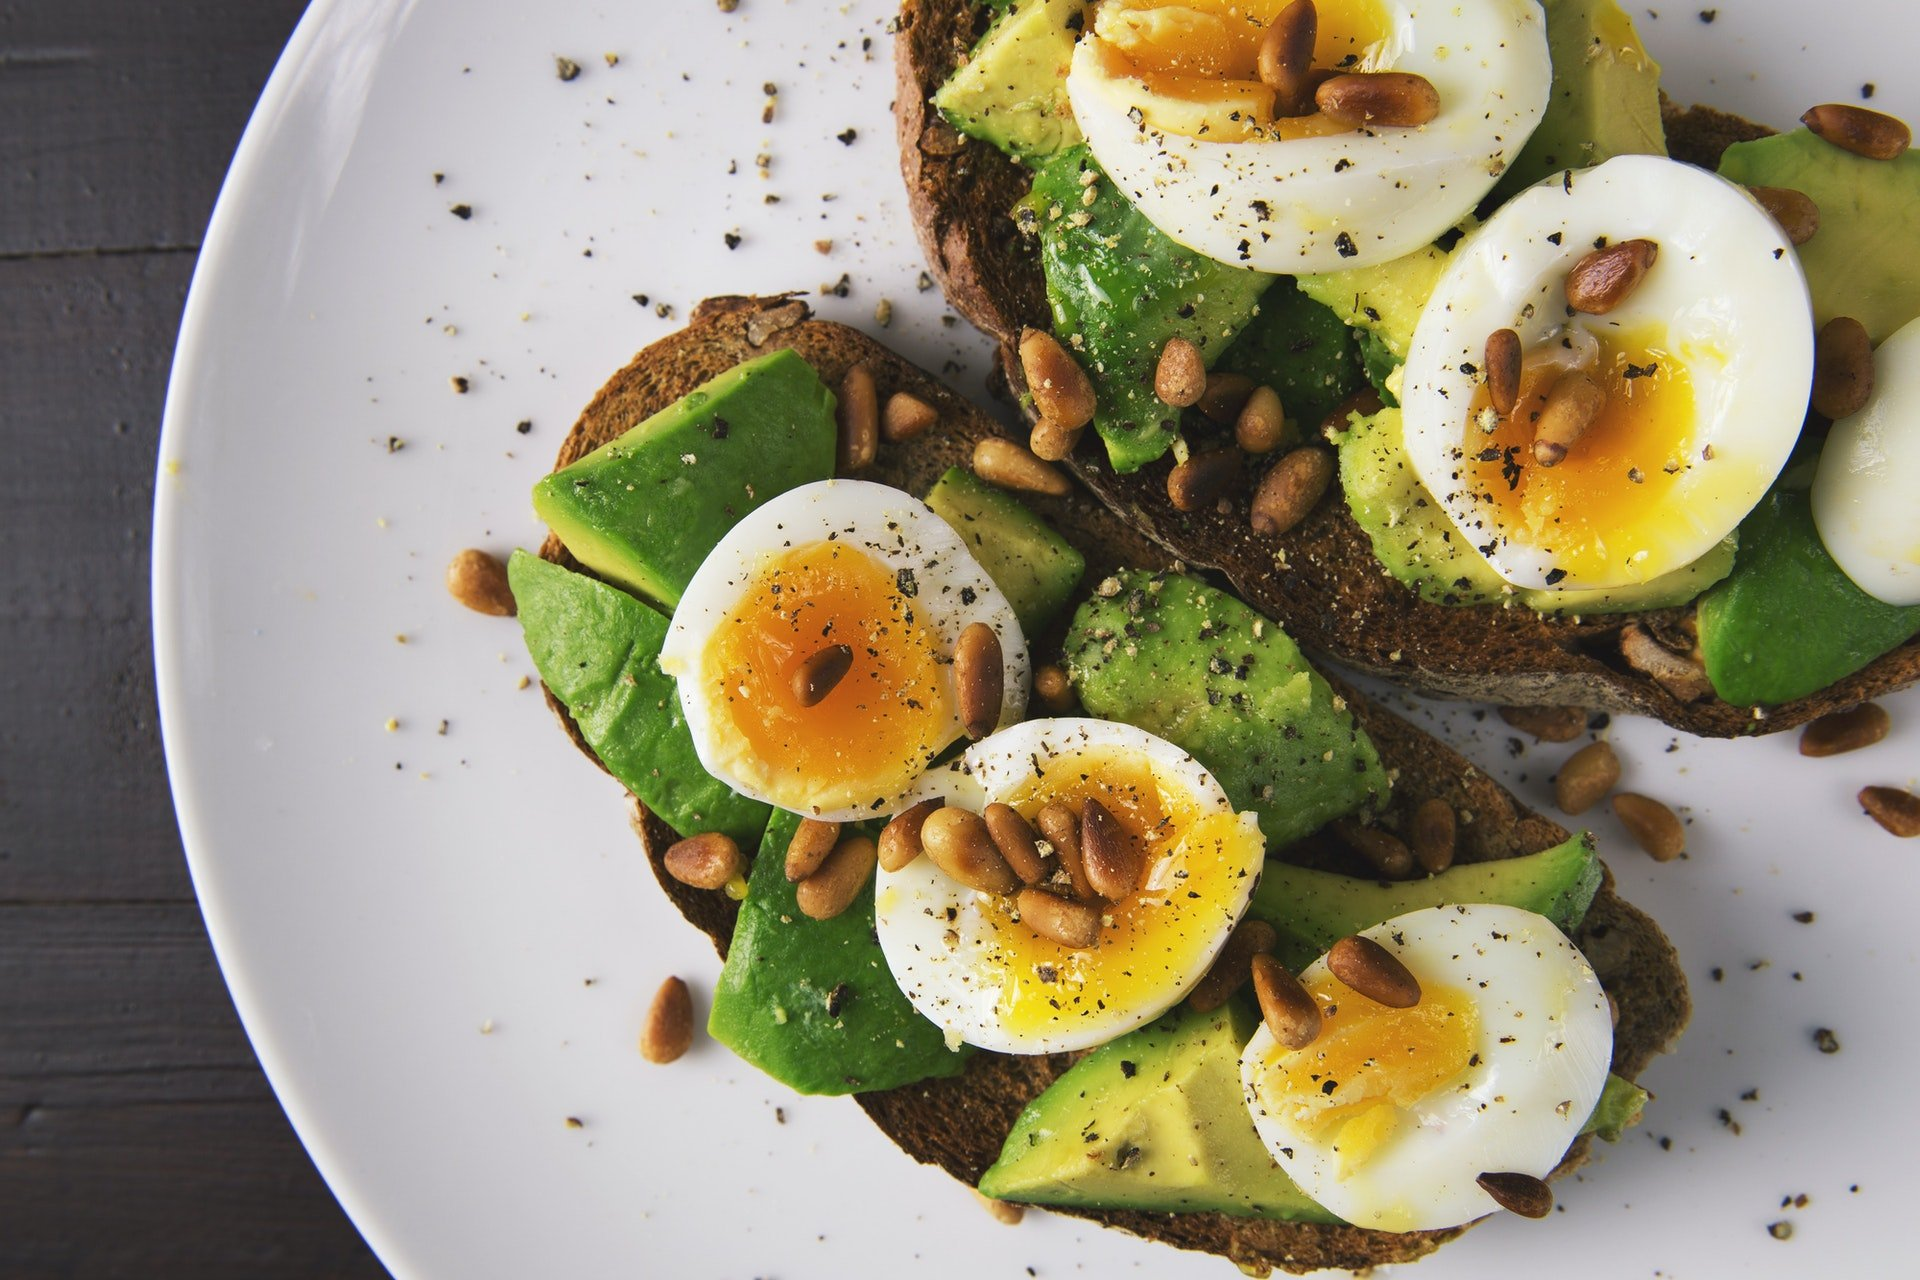 7 Superfoods to Boost Energy Levels - Eggs ©Foodie Factor from Pexels